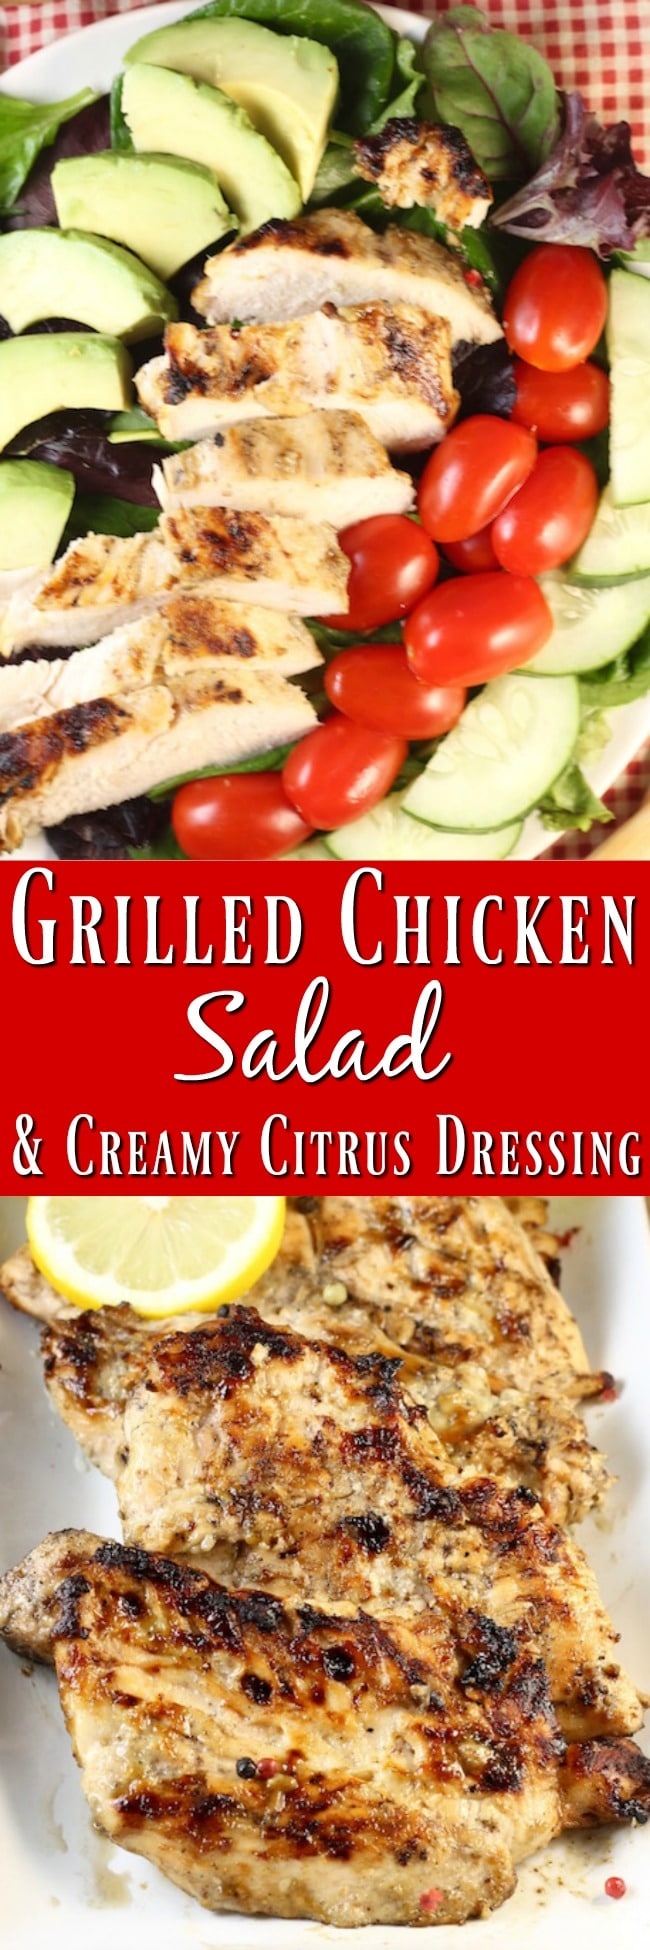 grilled-chicken-salad-plated-photo-collage